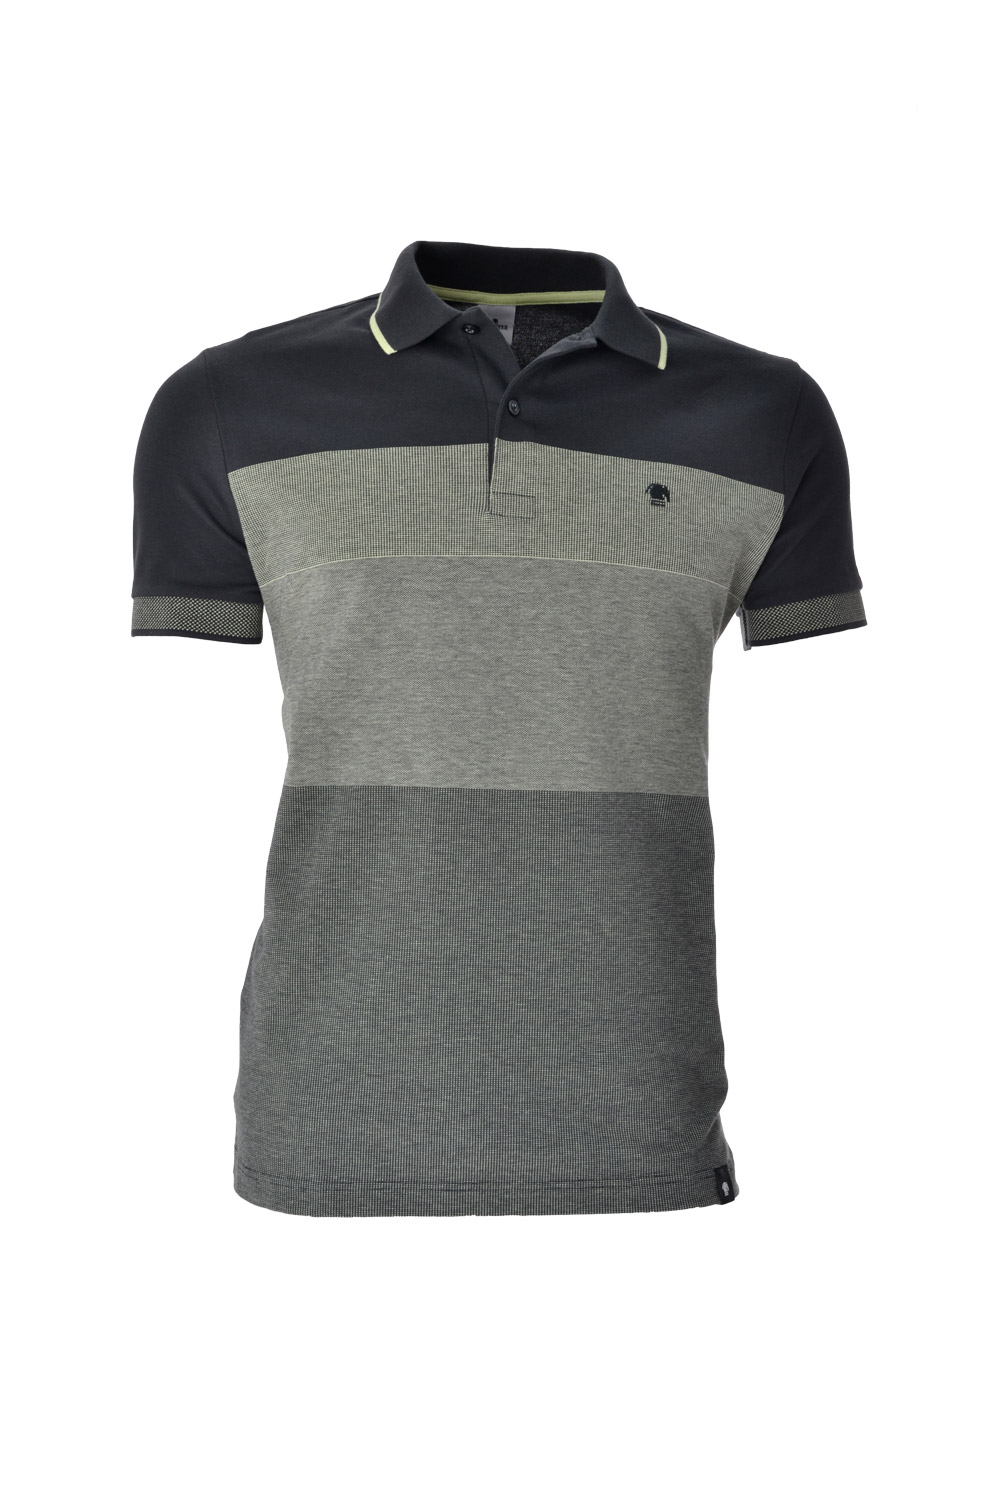 POLO MC CASUAL SLIM ALGODAO & ELASTANO BINADO STRETCH PIQUET VERDE MEDIO